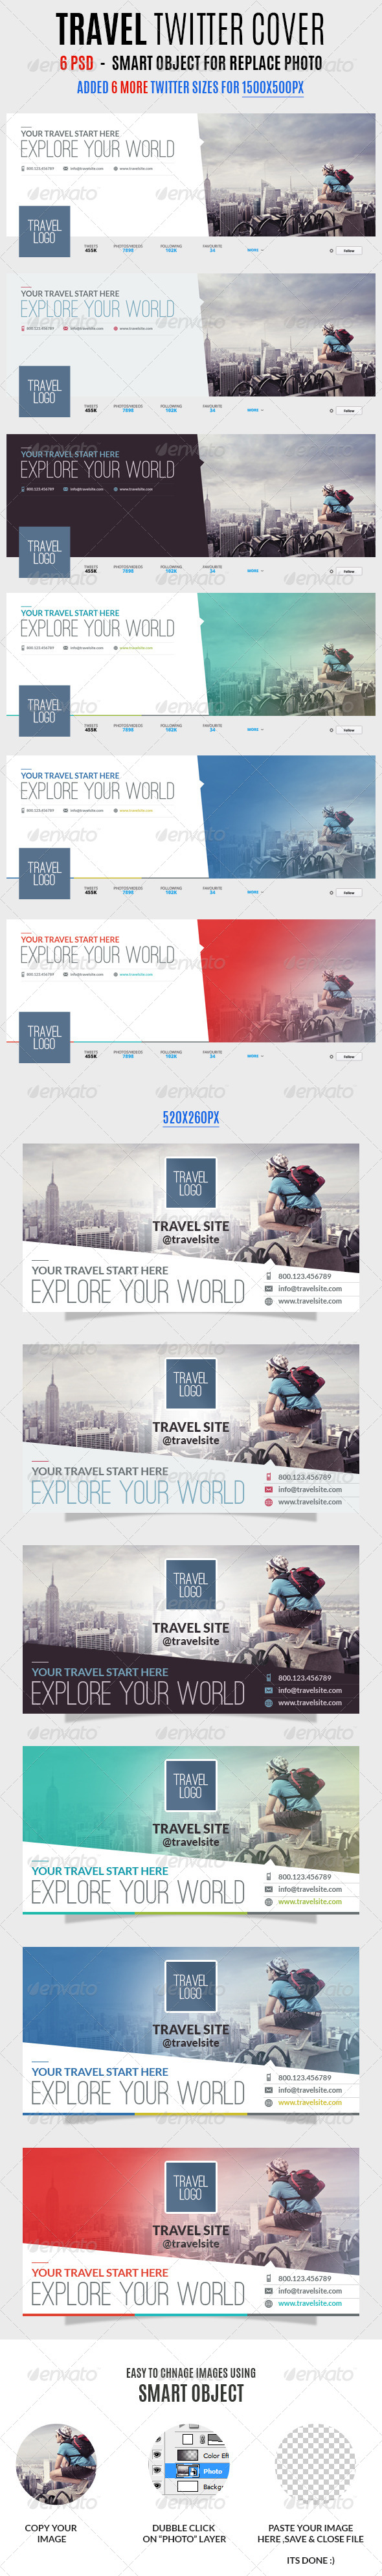 Travel Twitter Covers - Twitter Social Media